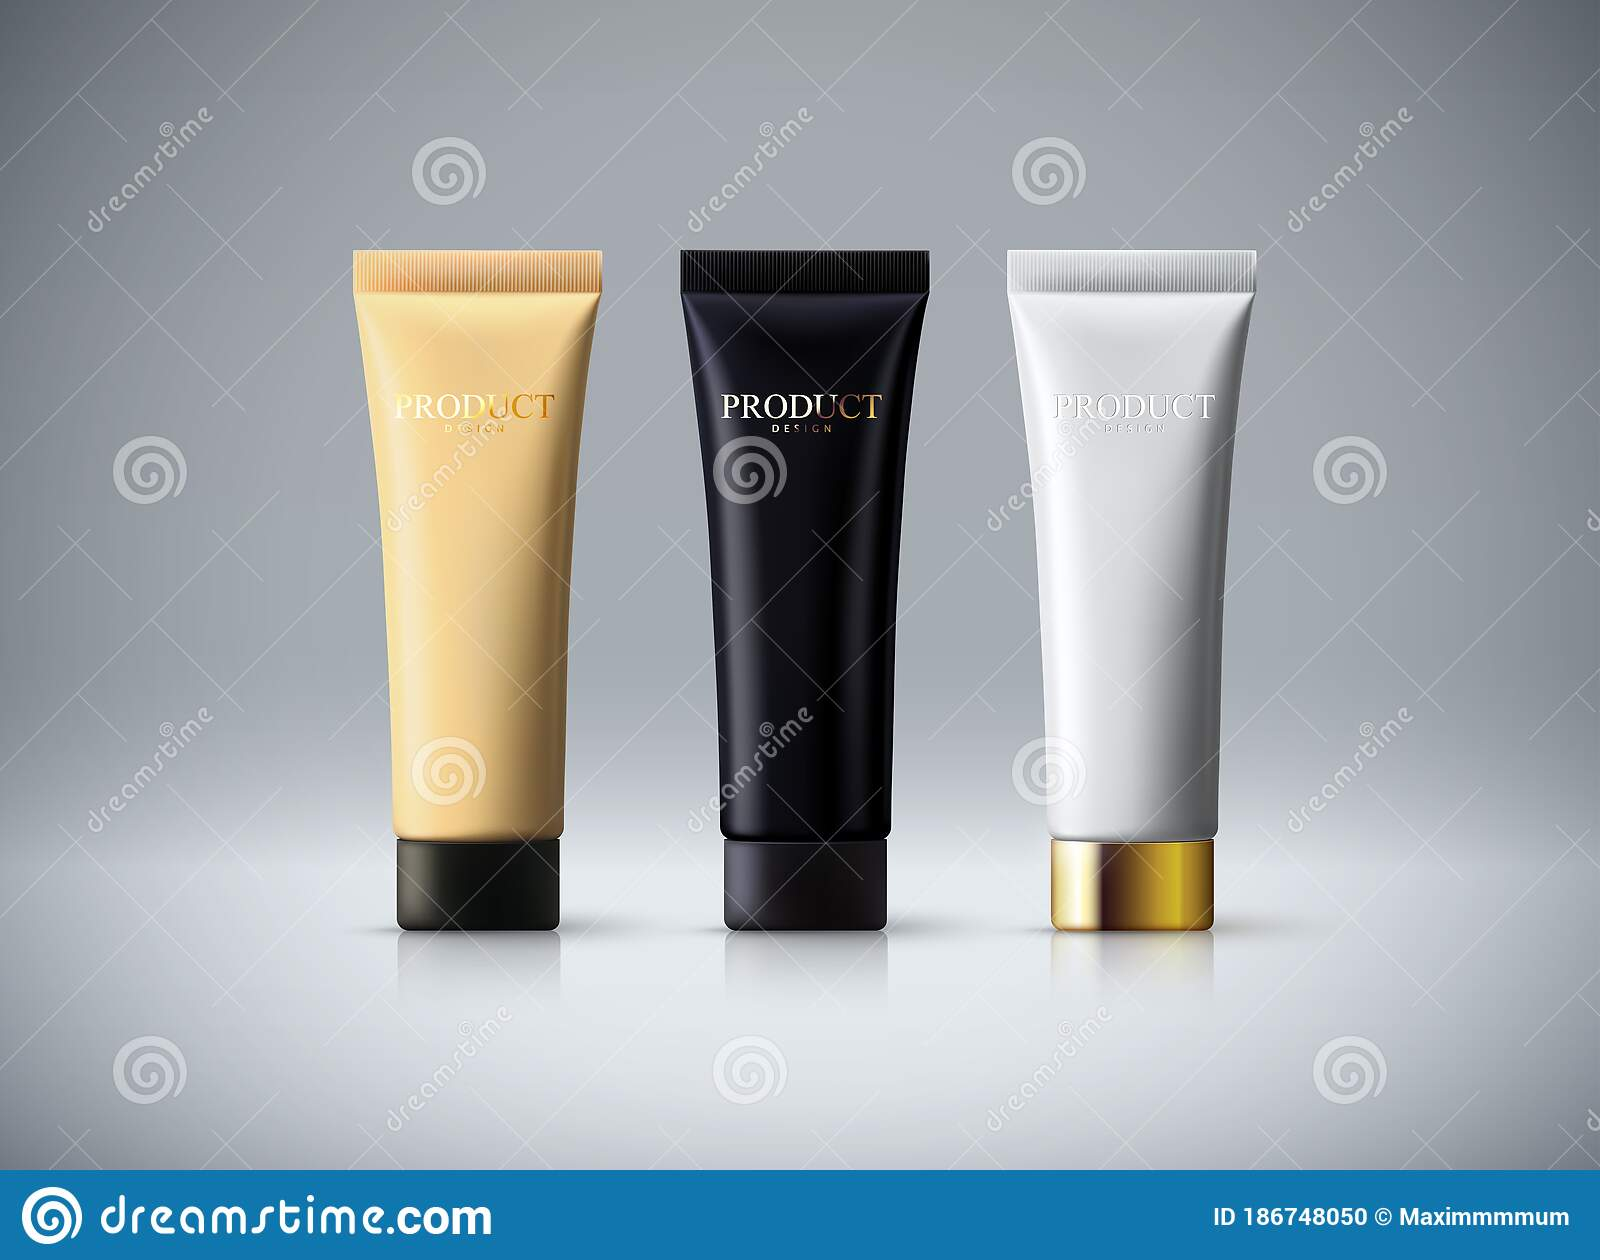 Cosmetic Packaging Design Stock Vector Illustration Of Concept 186748050